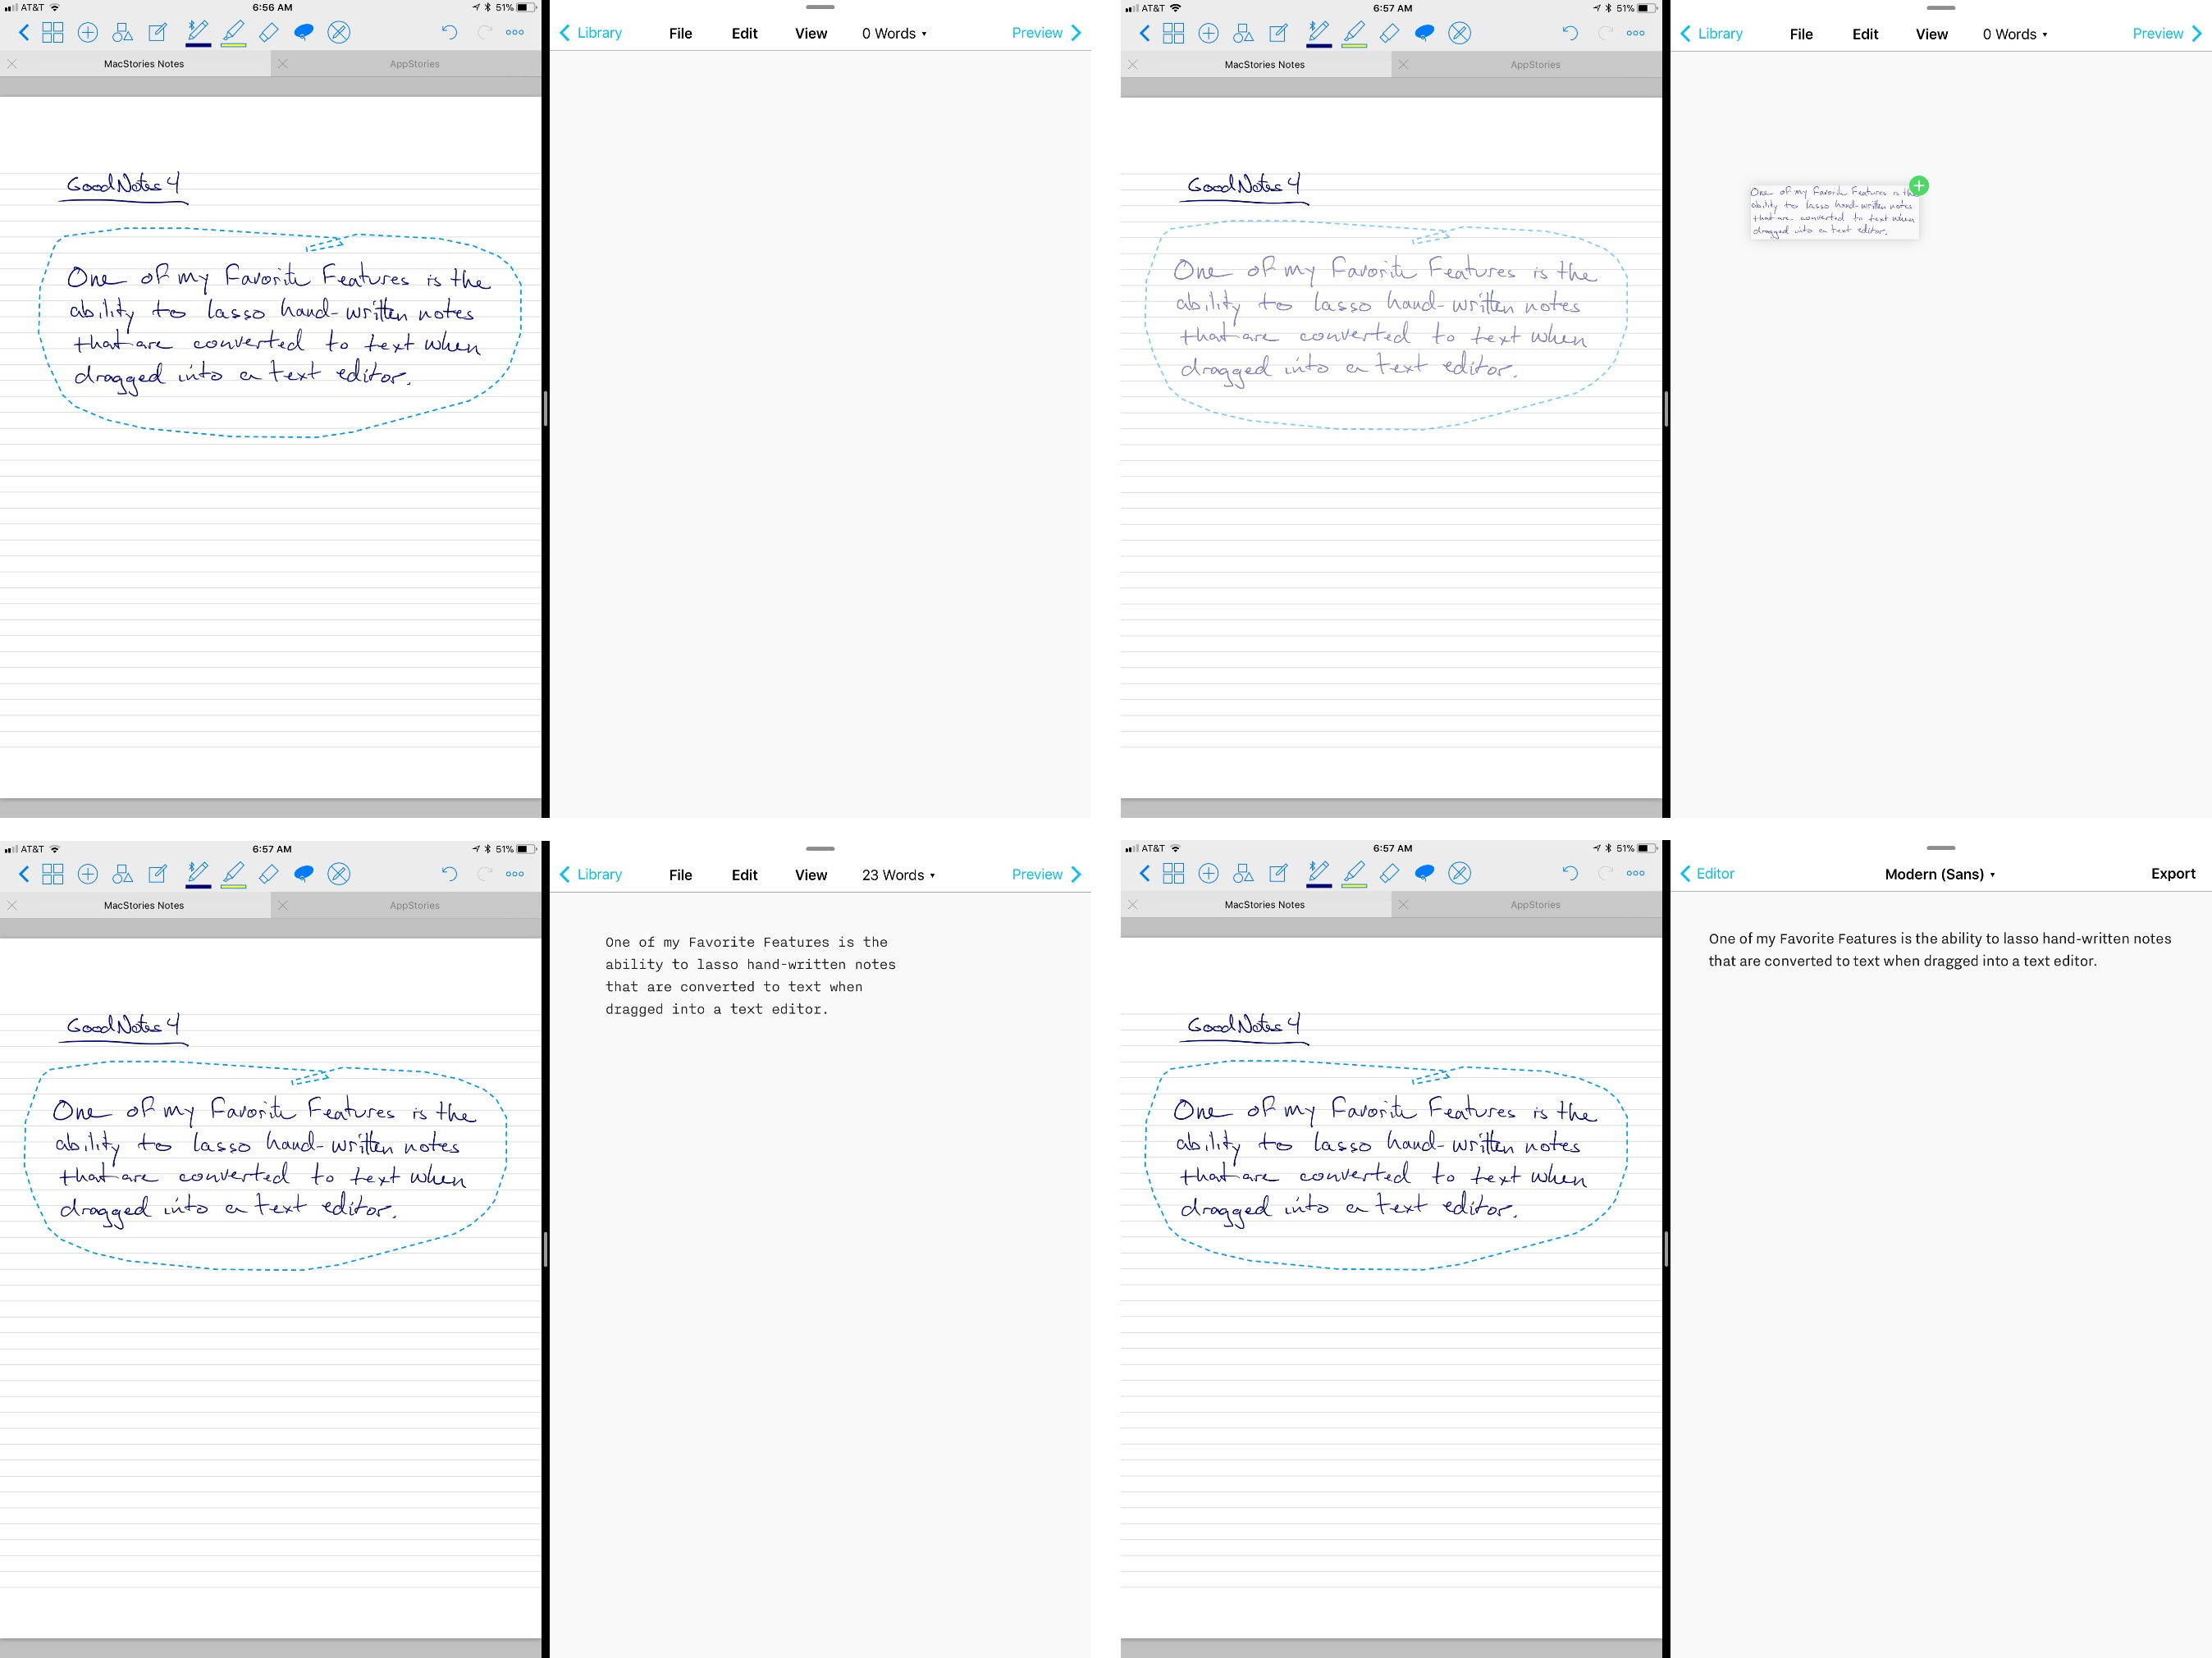 Lassoing handwritten notes and dragging them into a text editor like iA Writer, converts the notes to text.